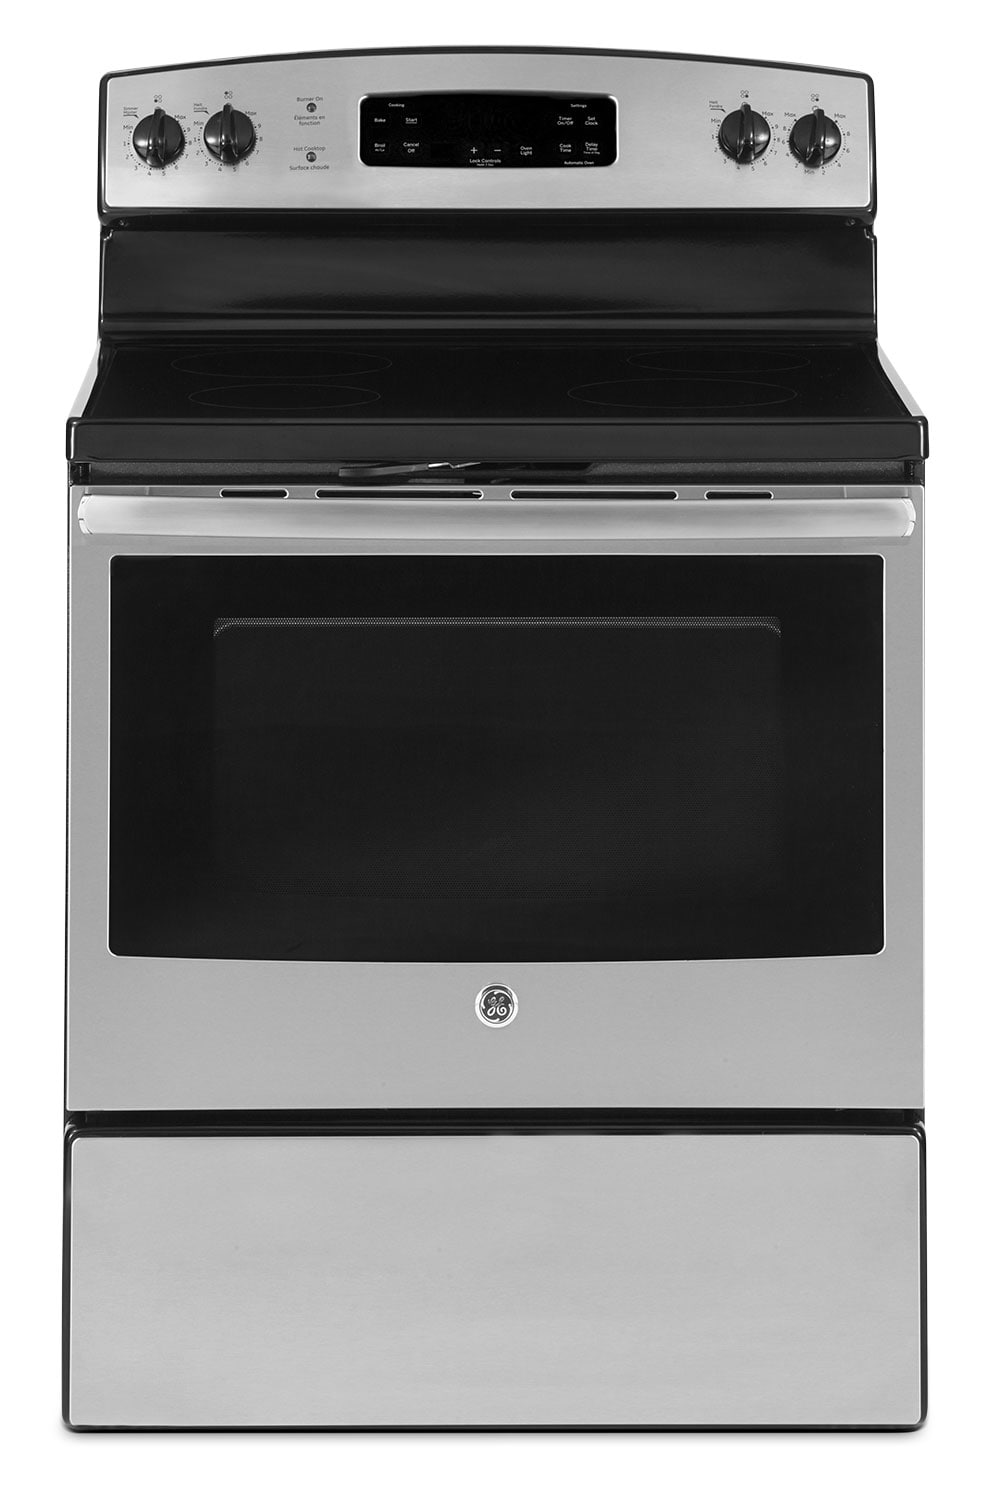 GE 5.0 Cu. Ft. Freestanding Electric Range – Stainless Steel